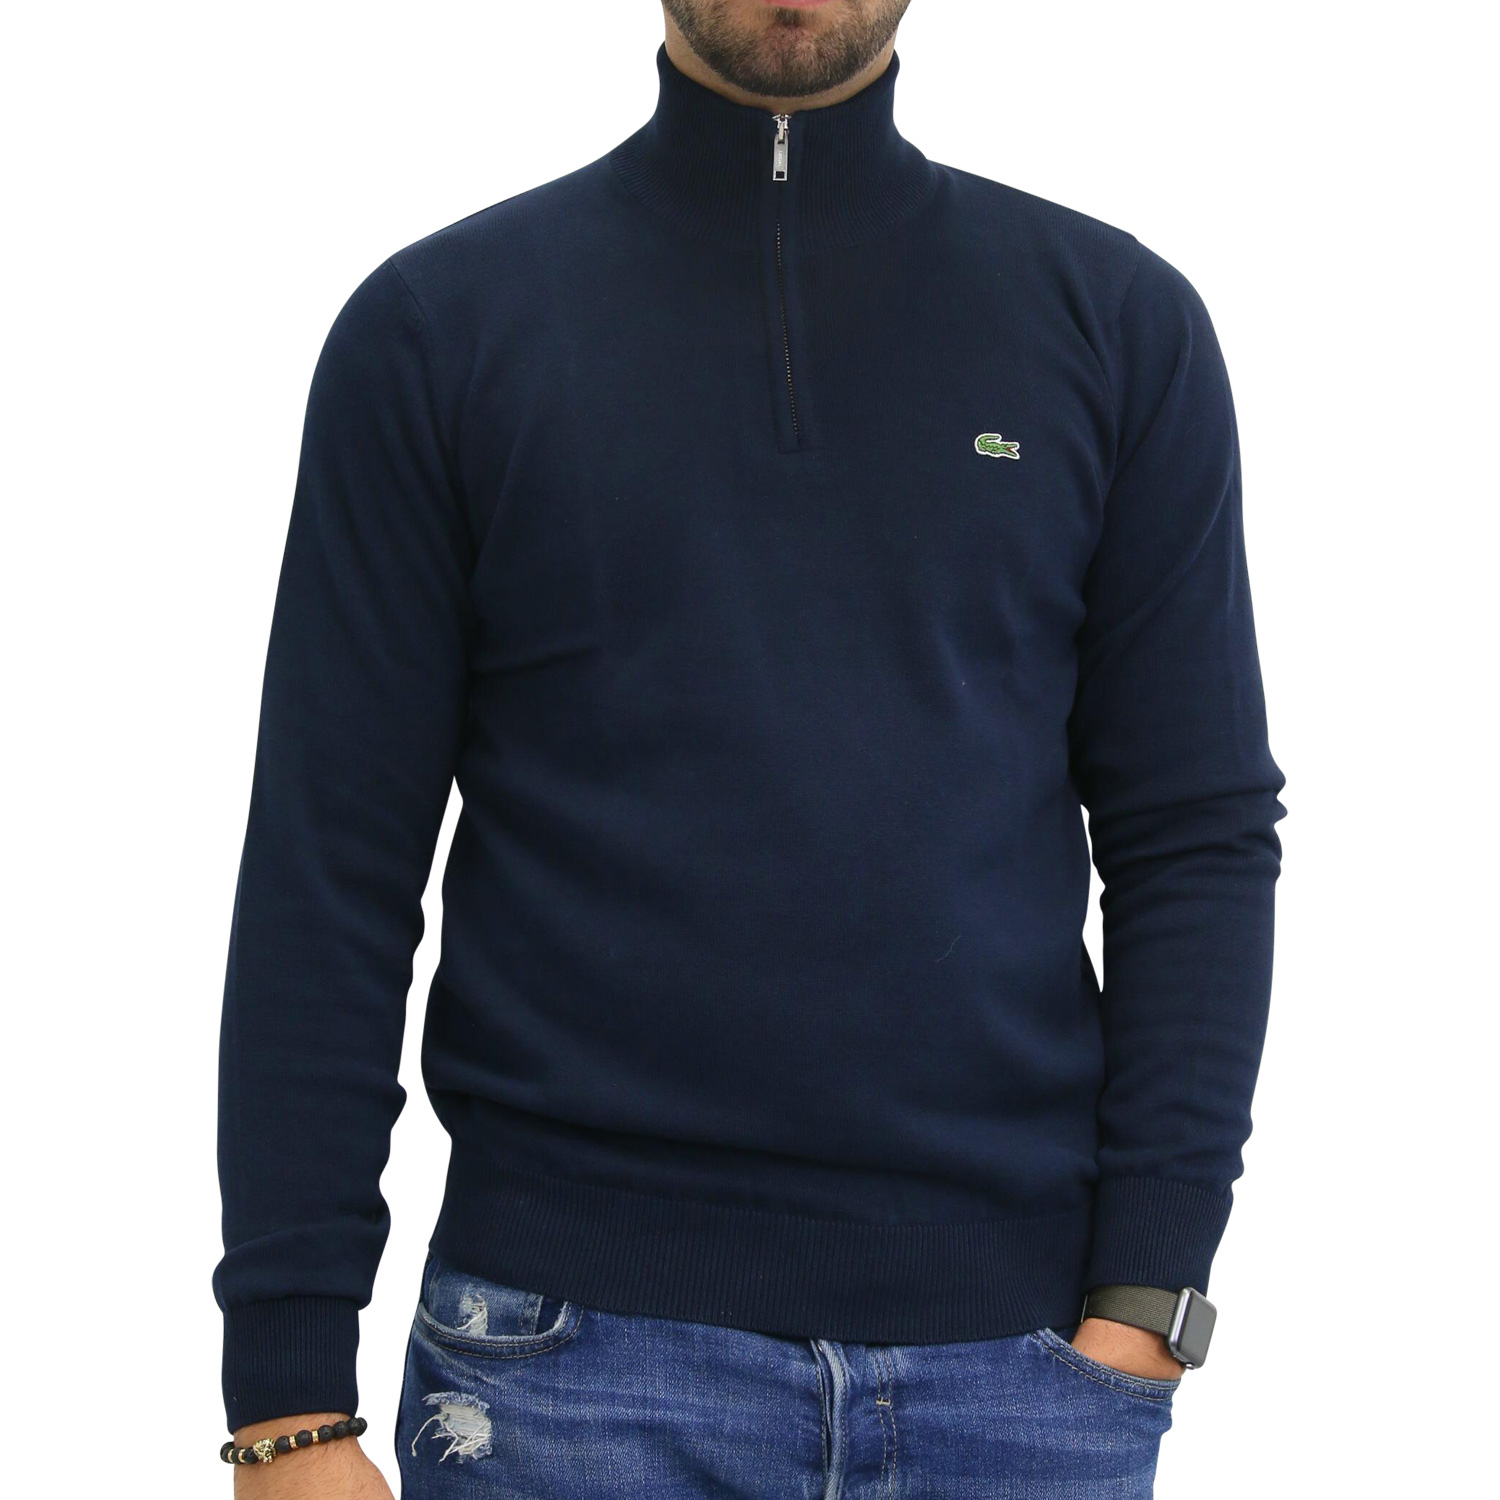 lacoste pullover 1 2 zip strickpullover troyer stehkragen. Black Bedroom Furniture Sets. Home Design Ideas